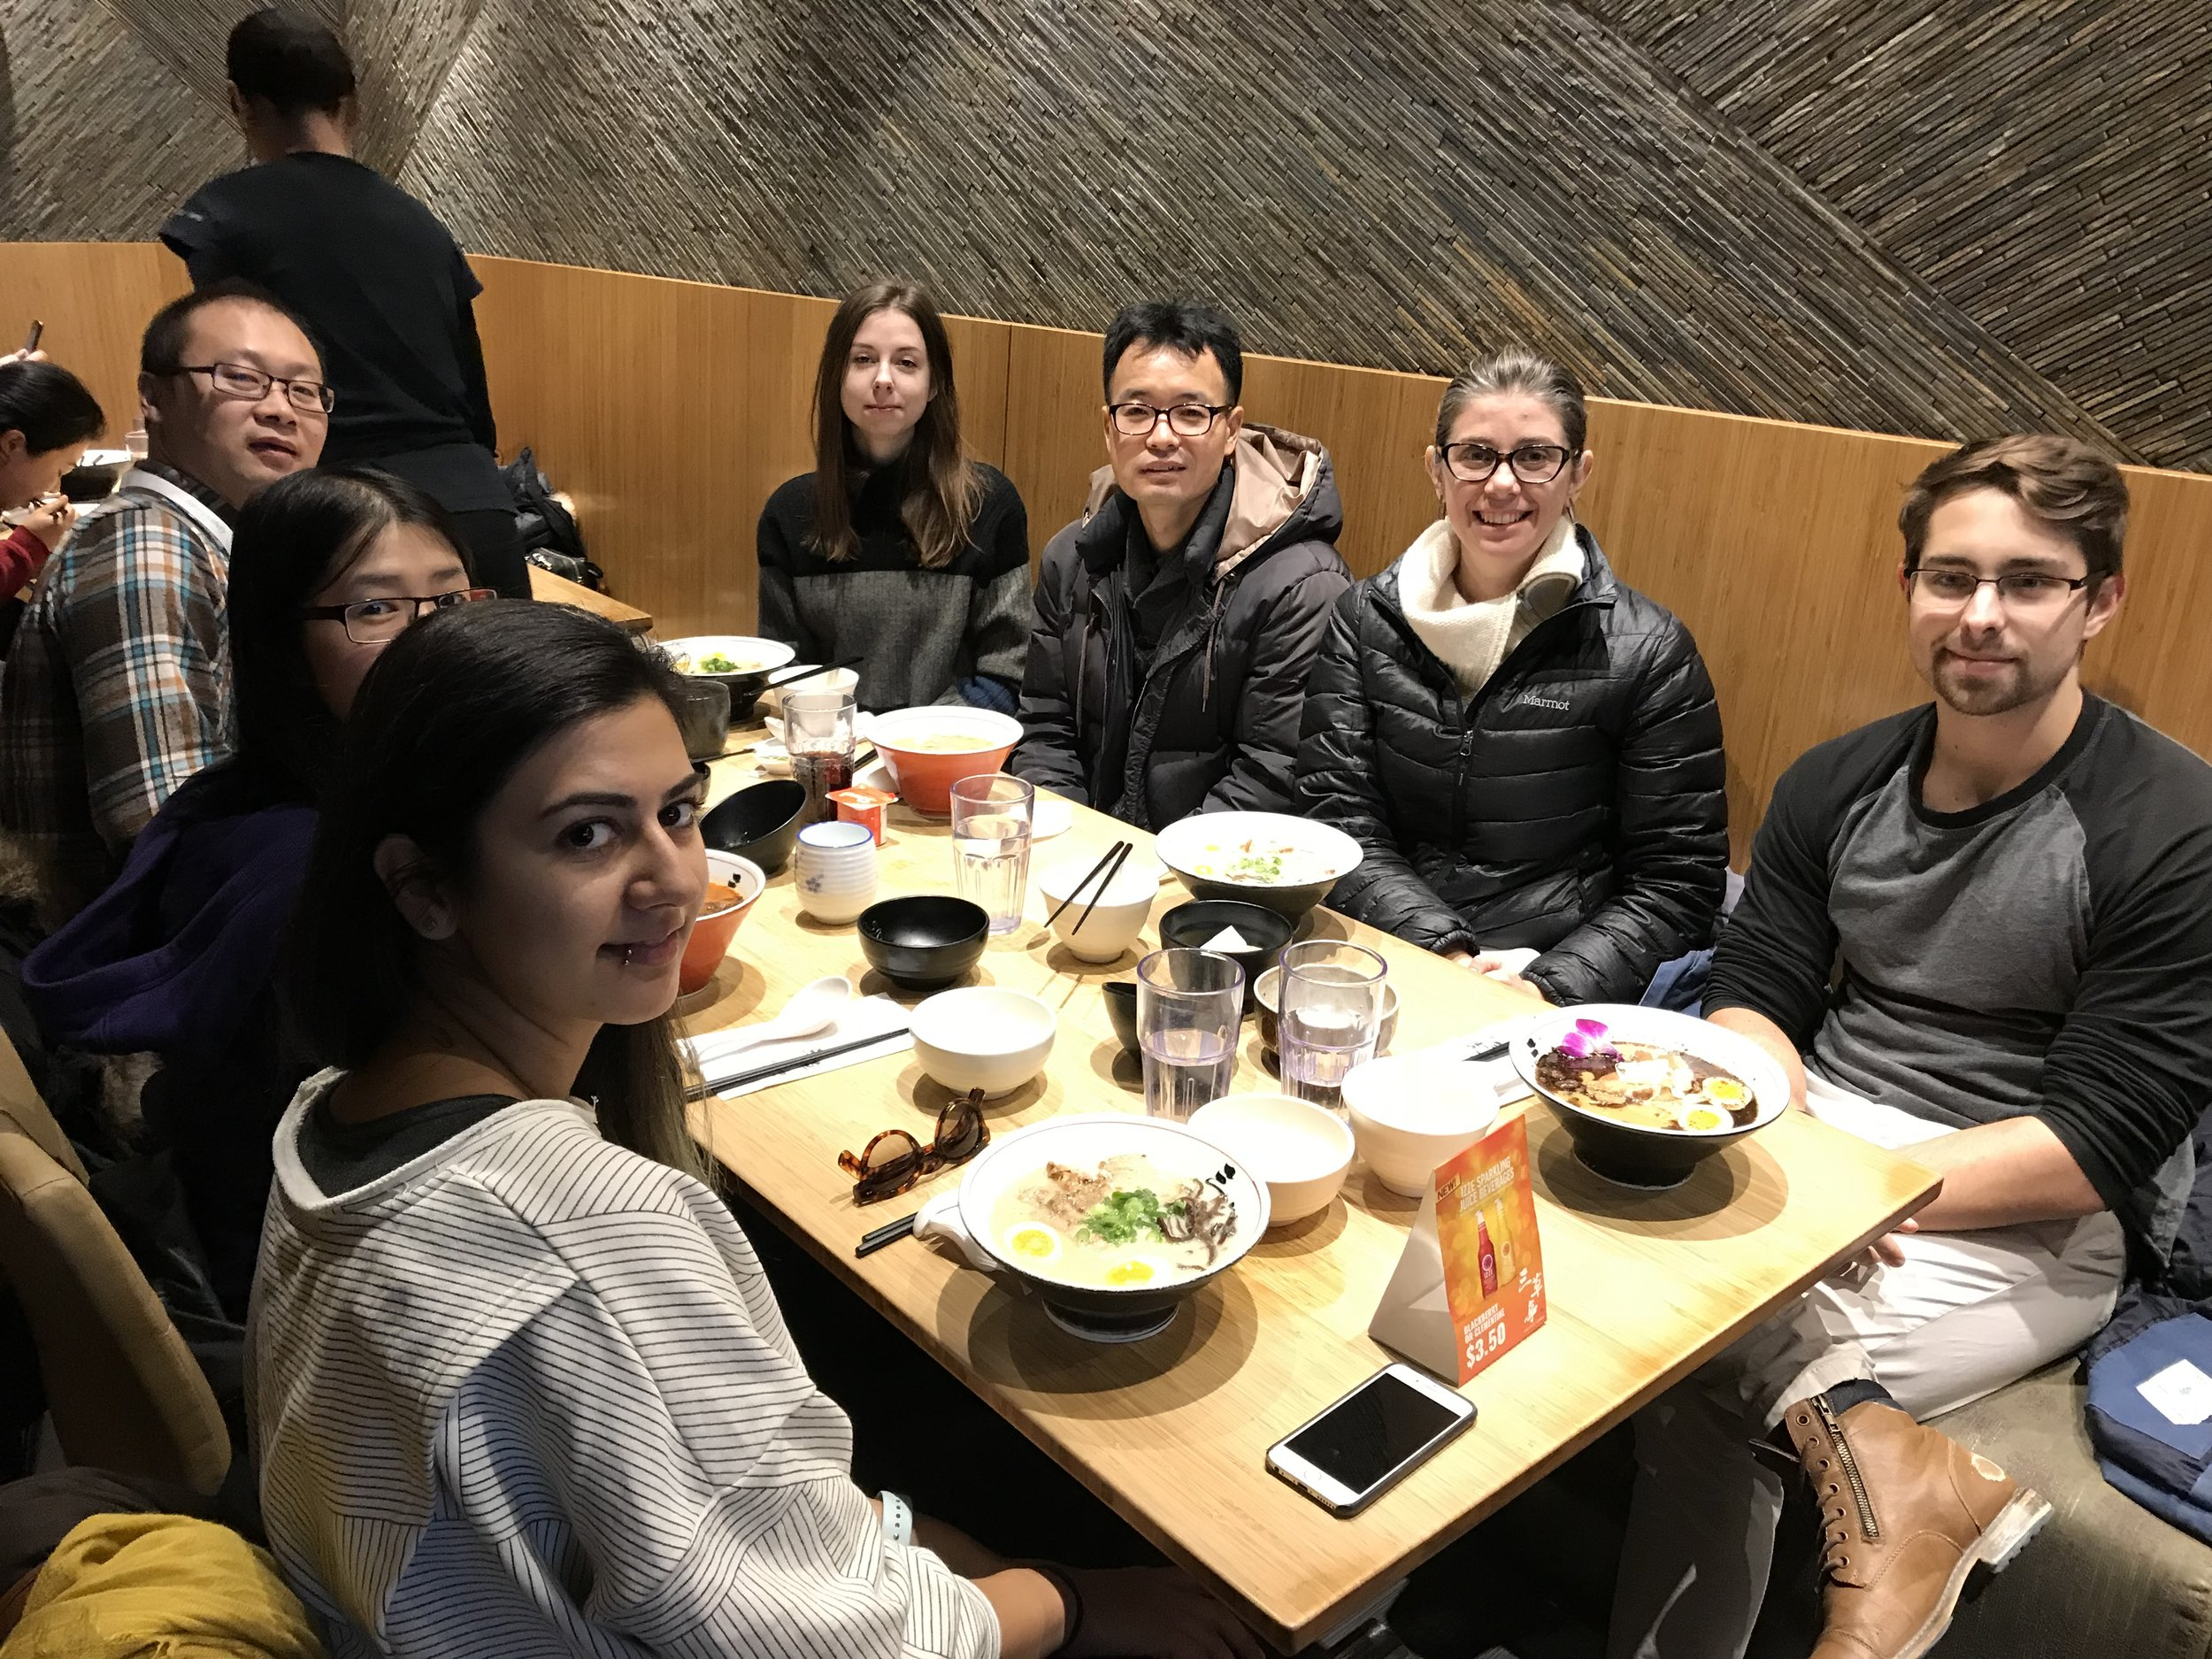 Xuetao, margaret, yassi (left) olya, ben, sara and kenny (right) at sansotei